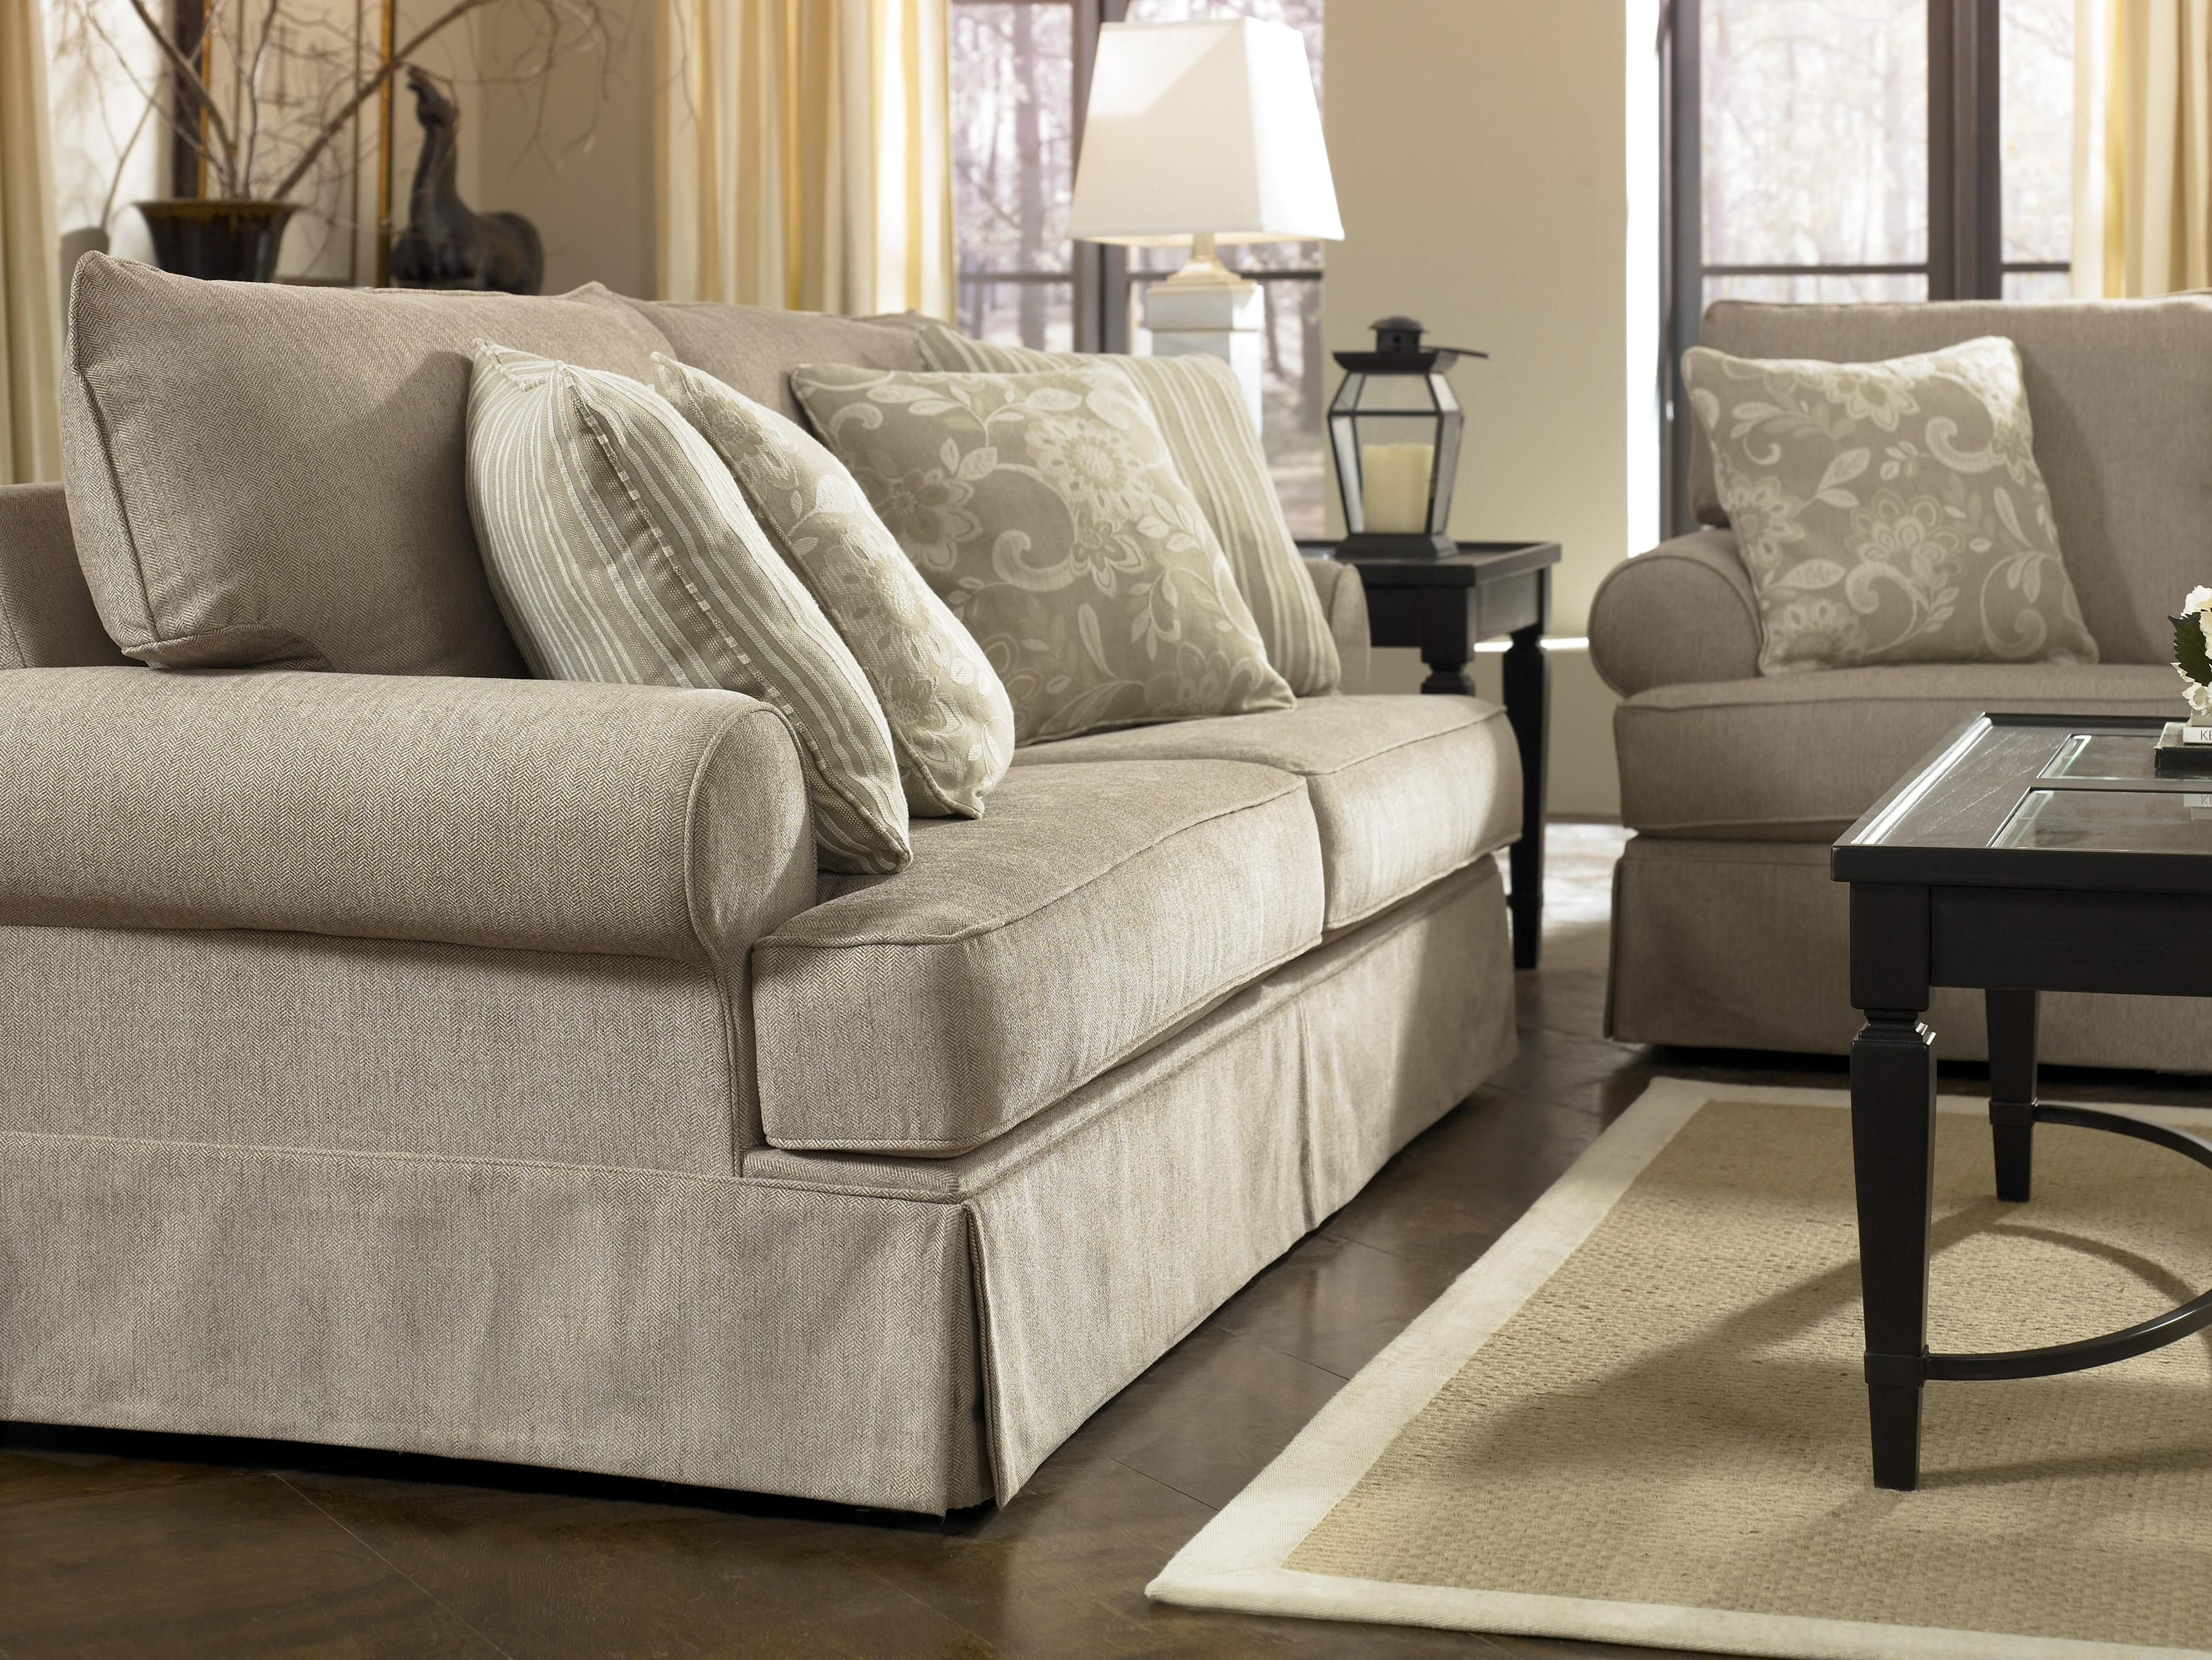 Candlewick Linen Sofa With Rolled Arms And Skirt Base By Signature Design Ashley A1 Furniture Bedding Madison Middleton Janesville Beloit